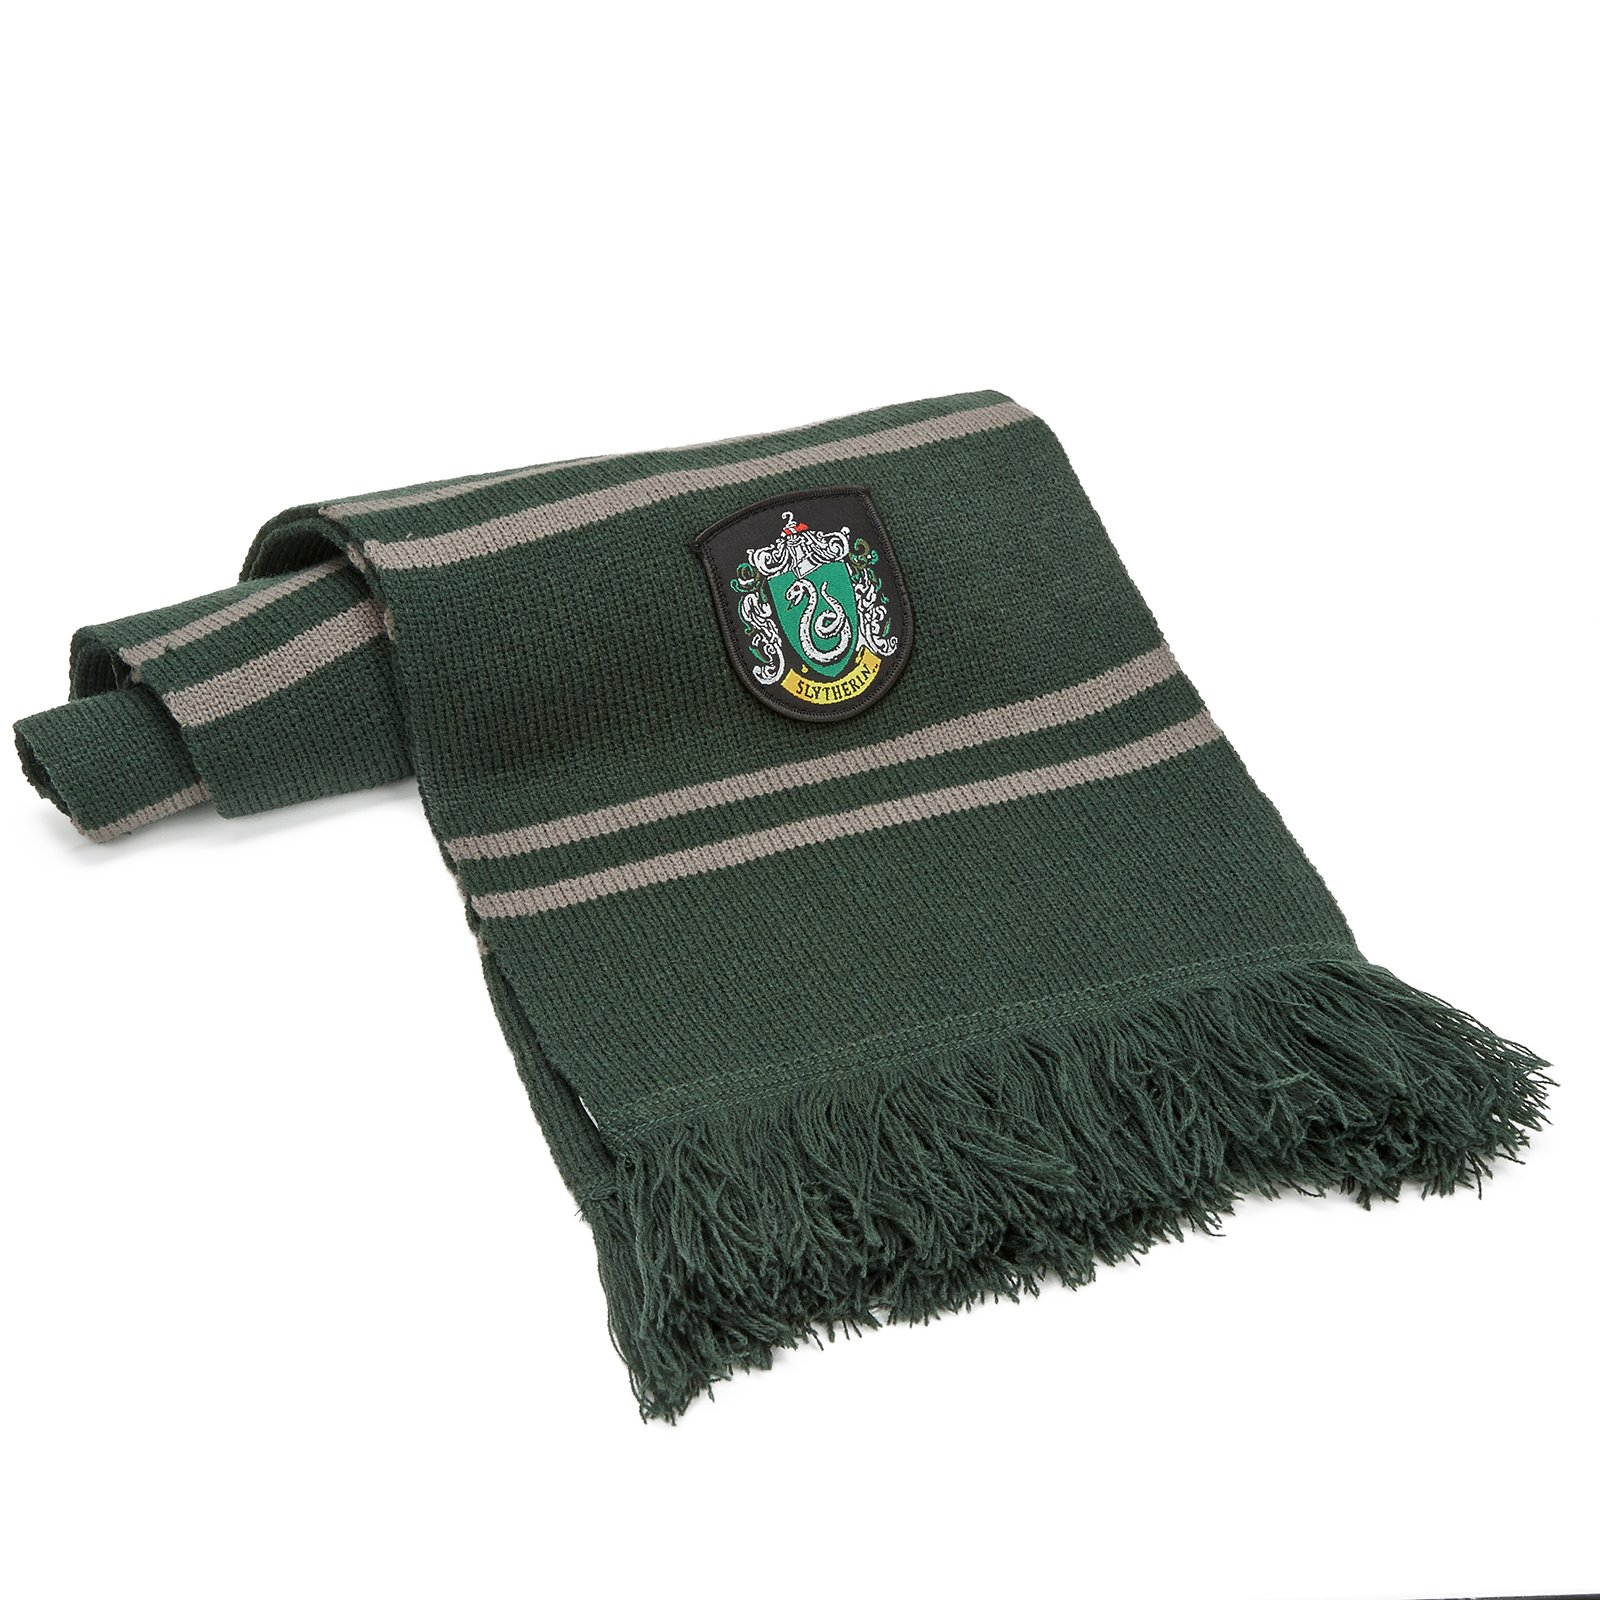 Harry Potter Scarf - Official - Ultra Soft Knitted Fabric - by Cinereplicas (Slytherin)